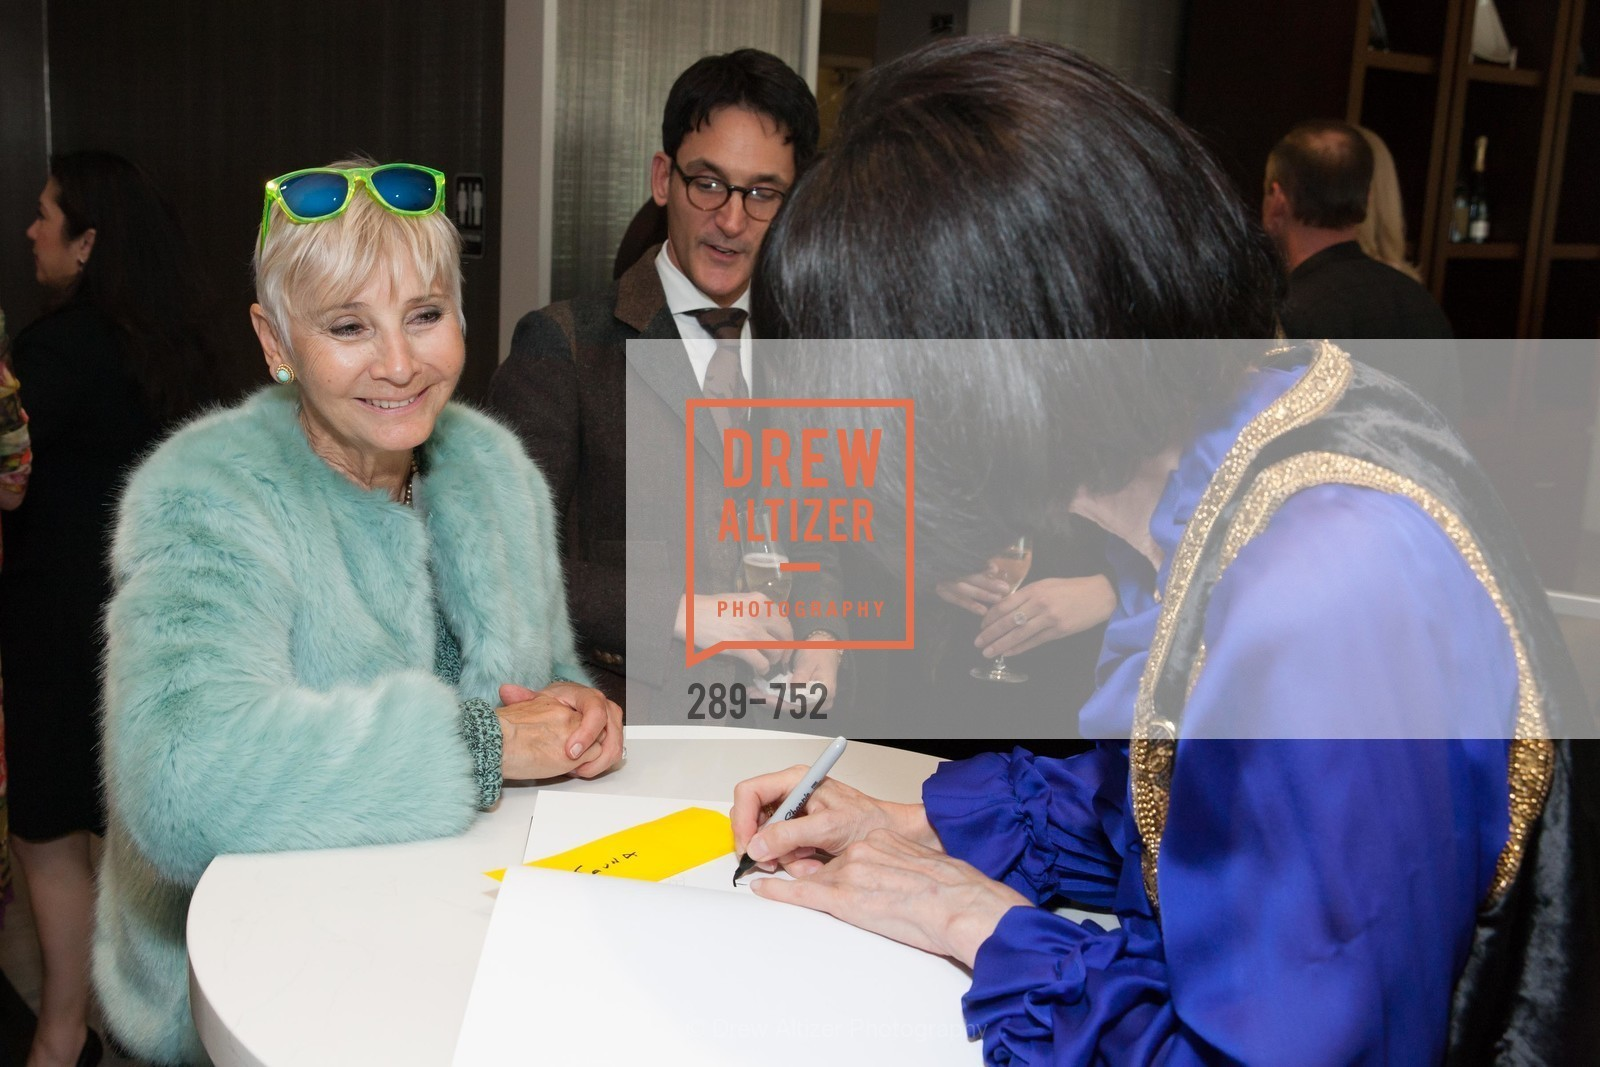 Gail Glasser, Electric Fashion Book Signing with Christine Suppes & Ken Downing at THE ROTUNDA, NEIMAN MARCUS, Neiman Marcus, Rotunda, May 27th, 2015,Drew Altizer, Drew Altizer Photography, full-service agency, private events, San Francisco photographer, photographer california